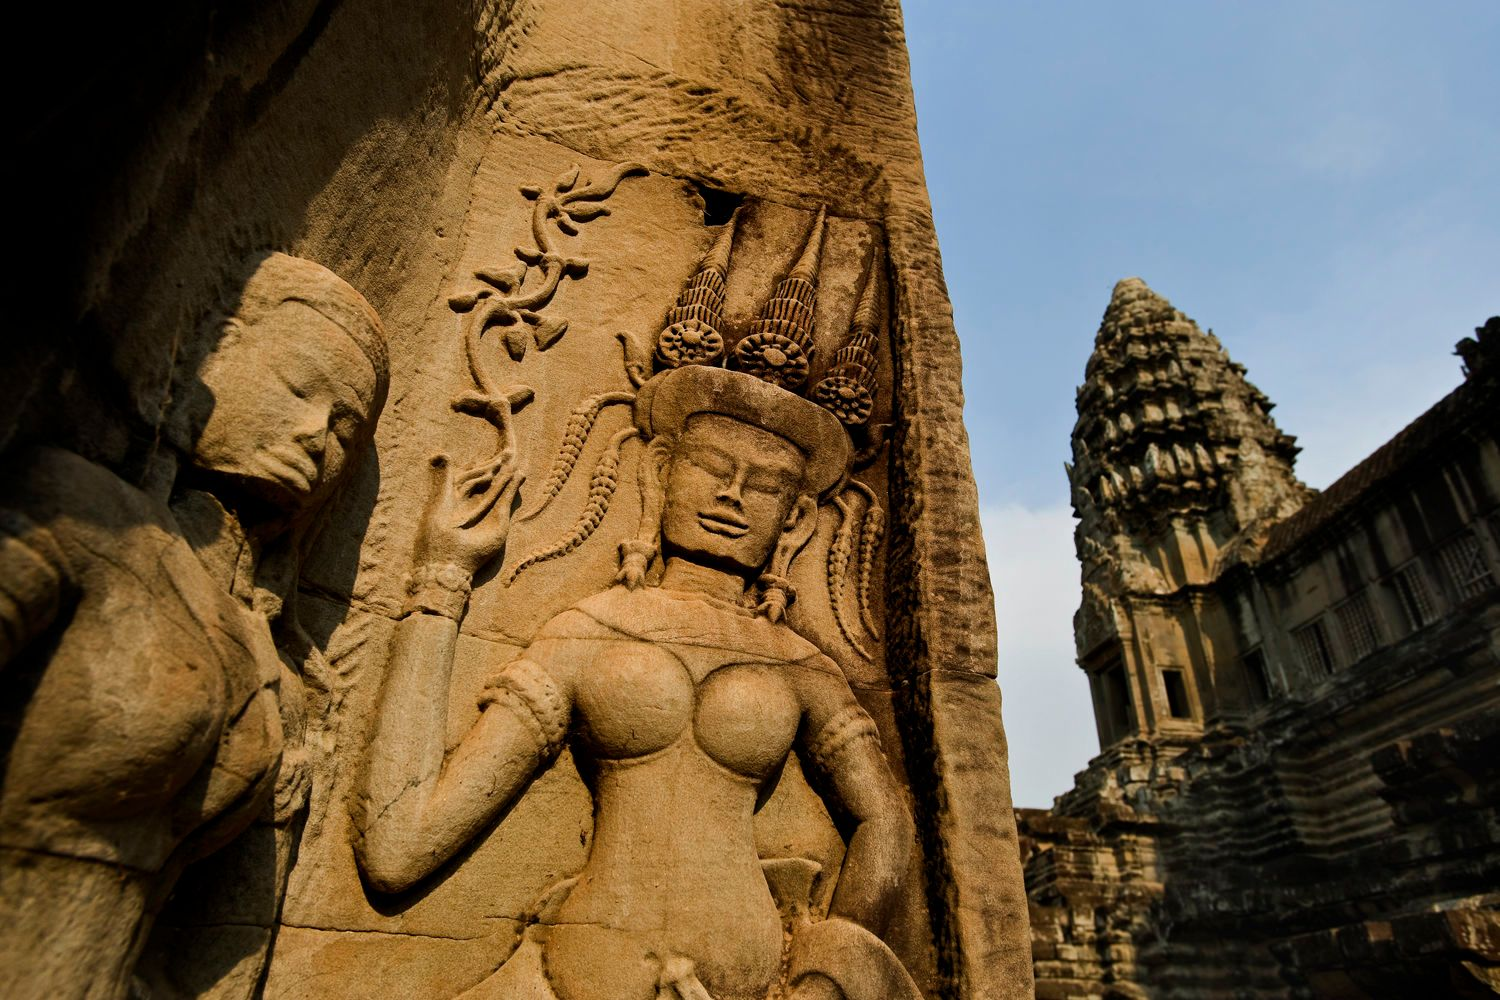 Angkor Wat Sculptures and Ruins